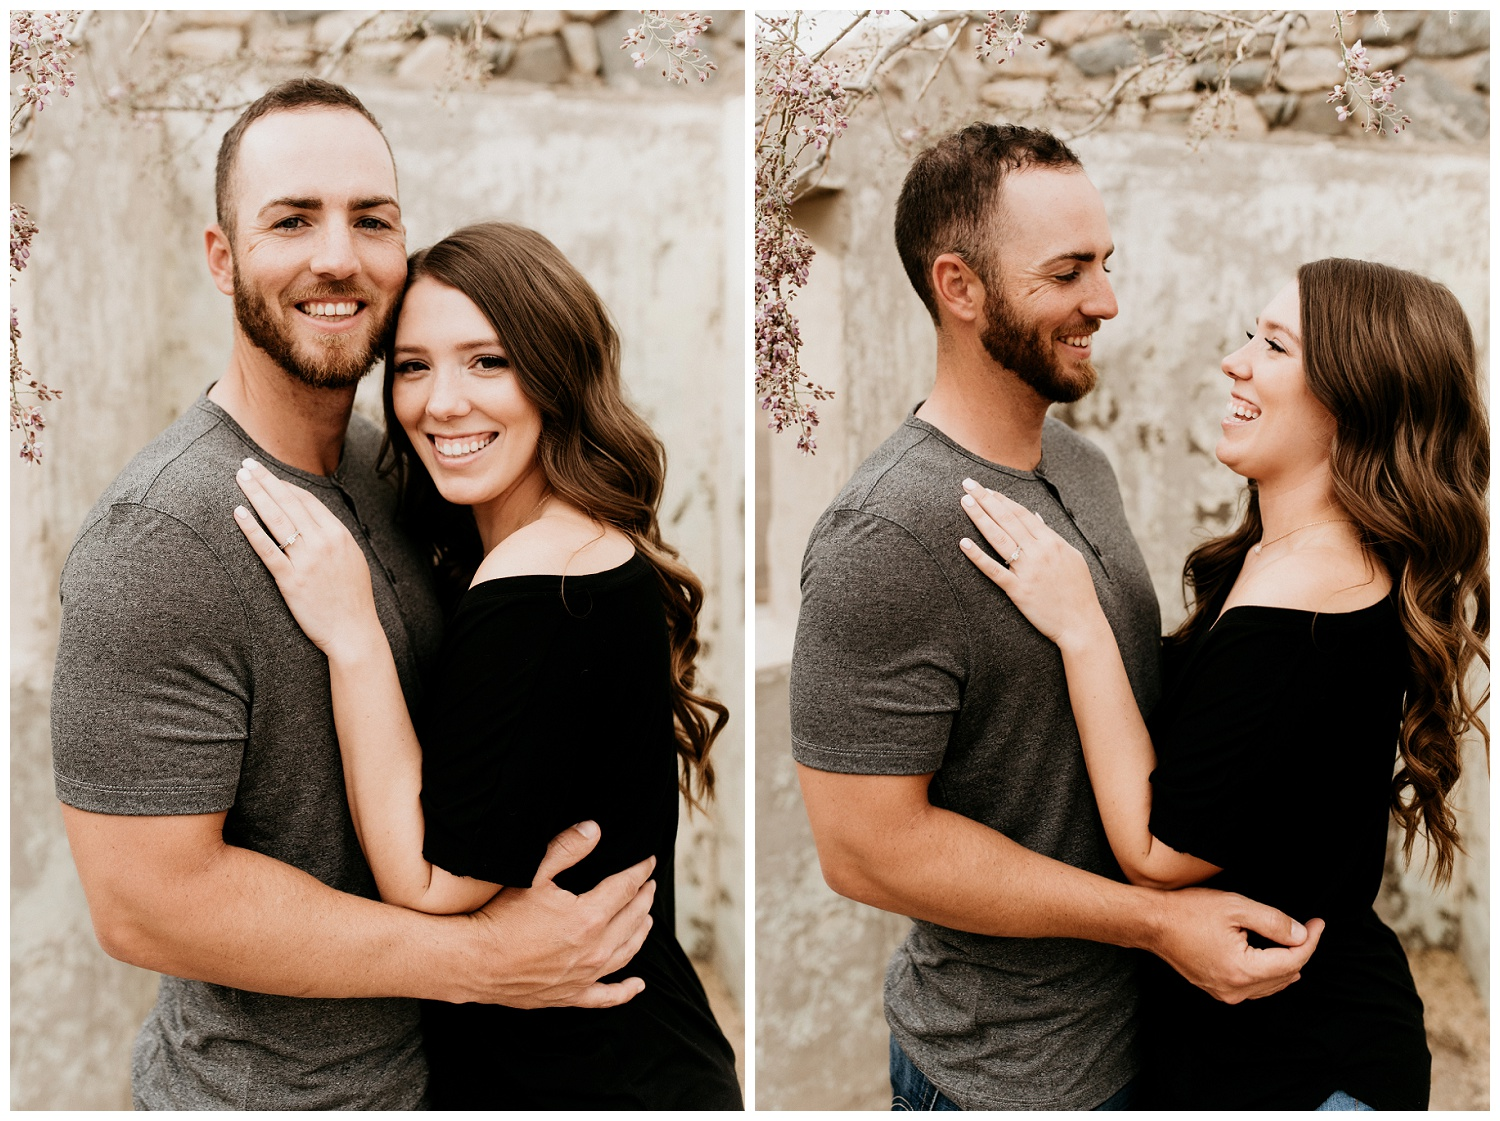 South Mountain Engagement Session Phoenix Wedding Photographer Ashtyn Nicole Photo 03